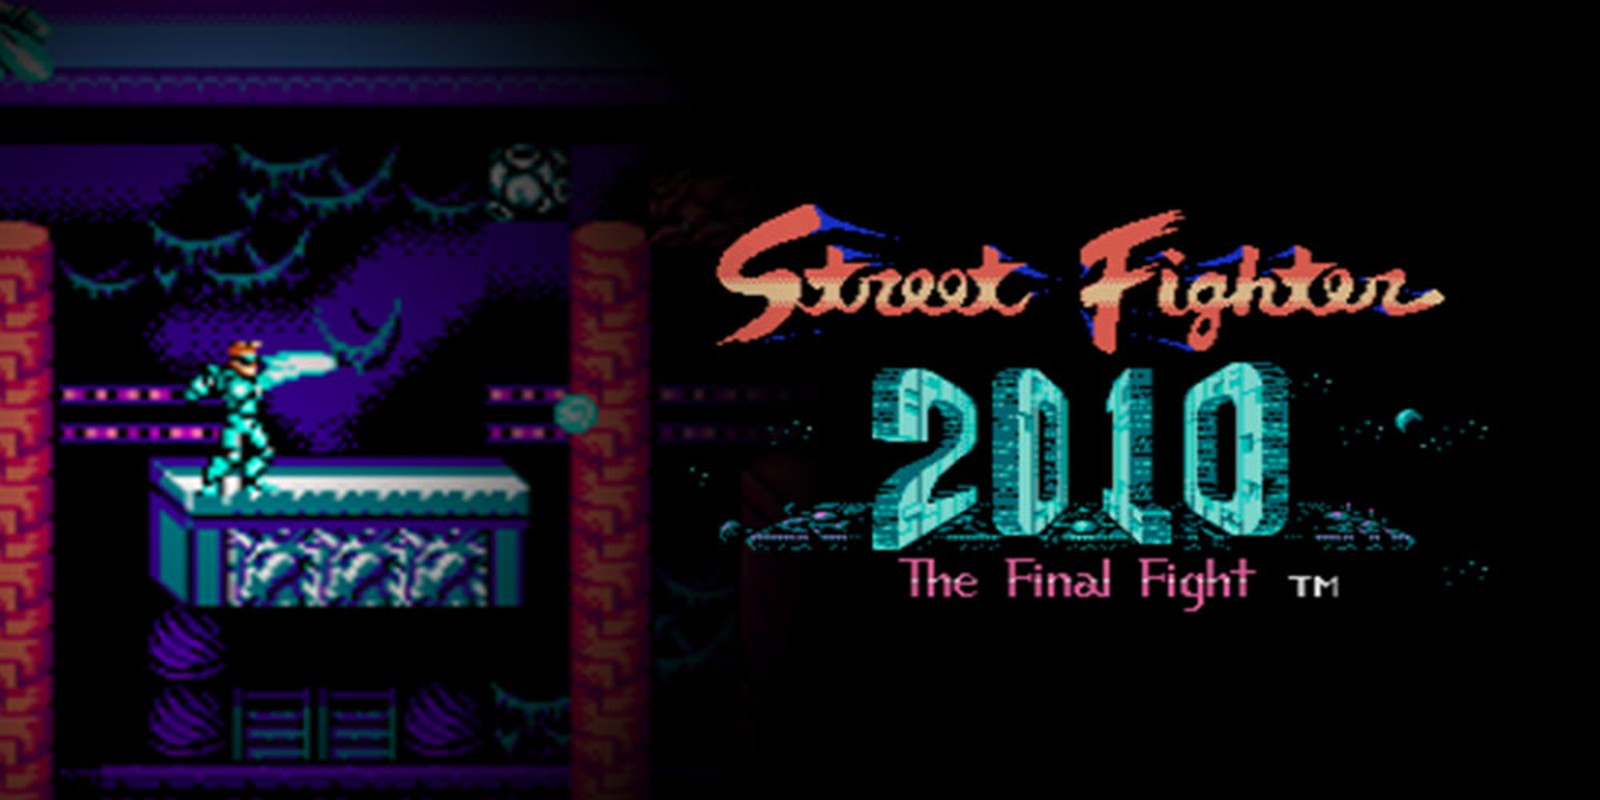 Street Fighter 2010 The Final Fight Nes Games Nintendo